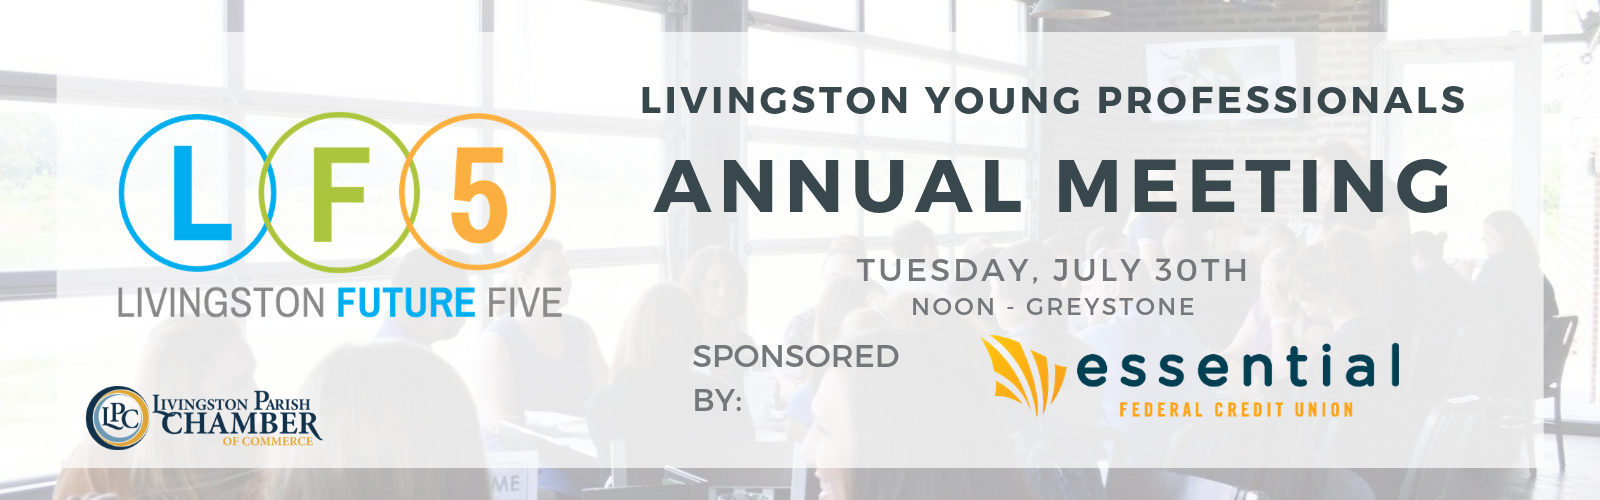 LYP Annual Meeting July 30 Sponsored by Essential FCU